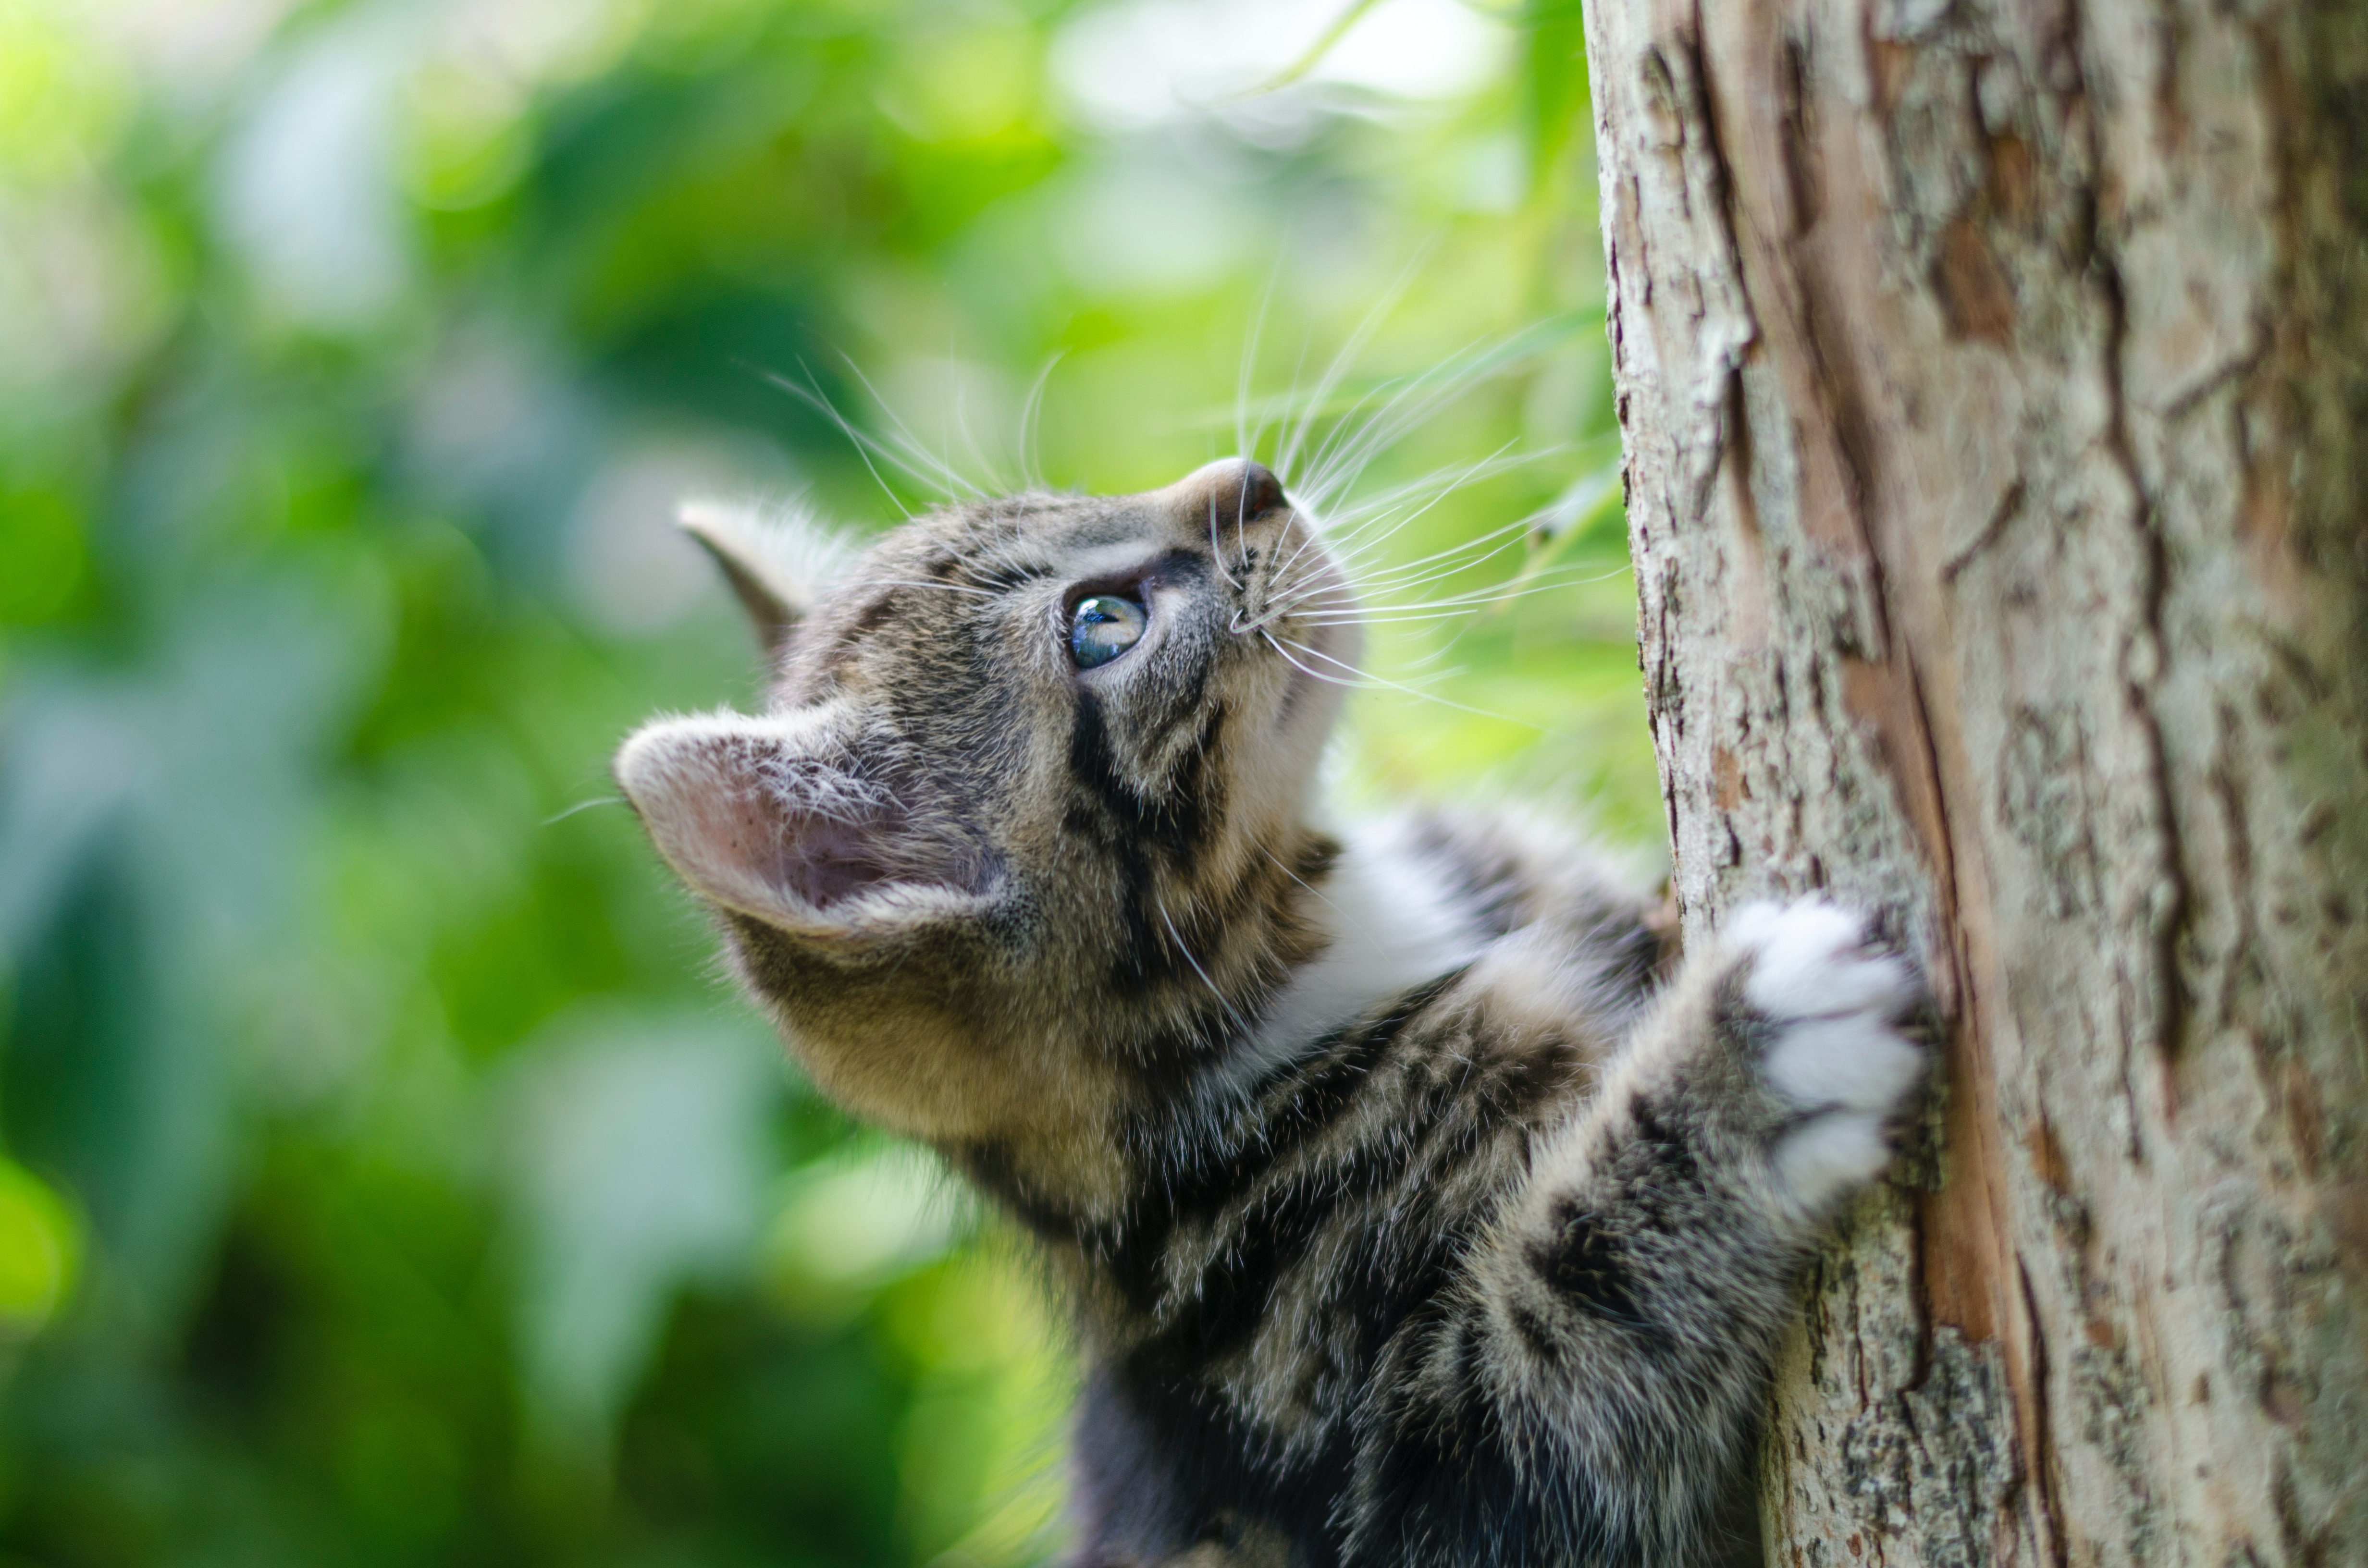 Fluffy little tabby with blue eyes climbing up a tree.